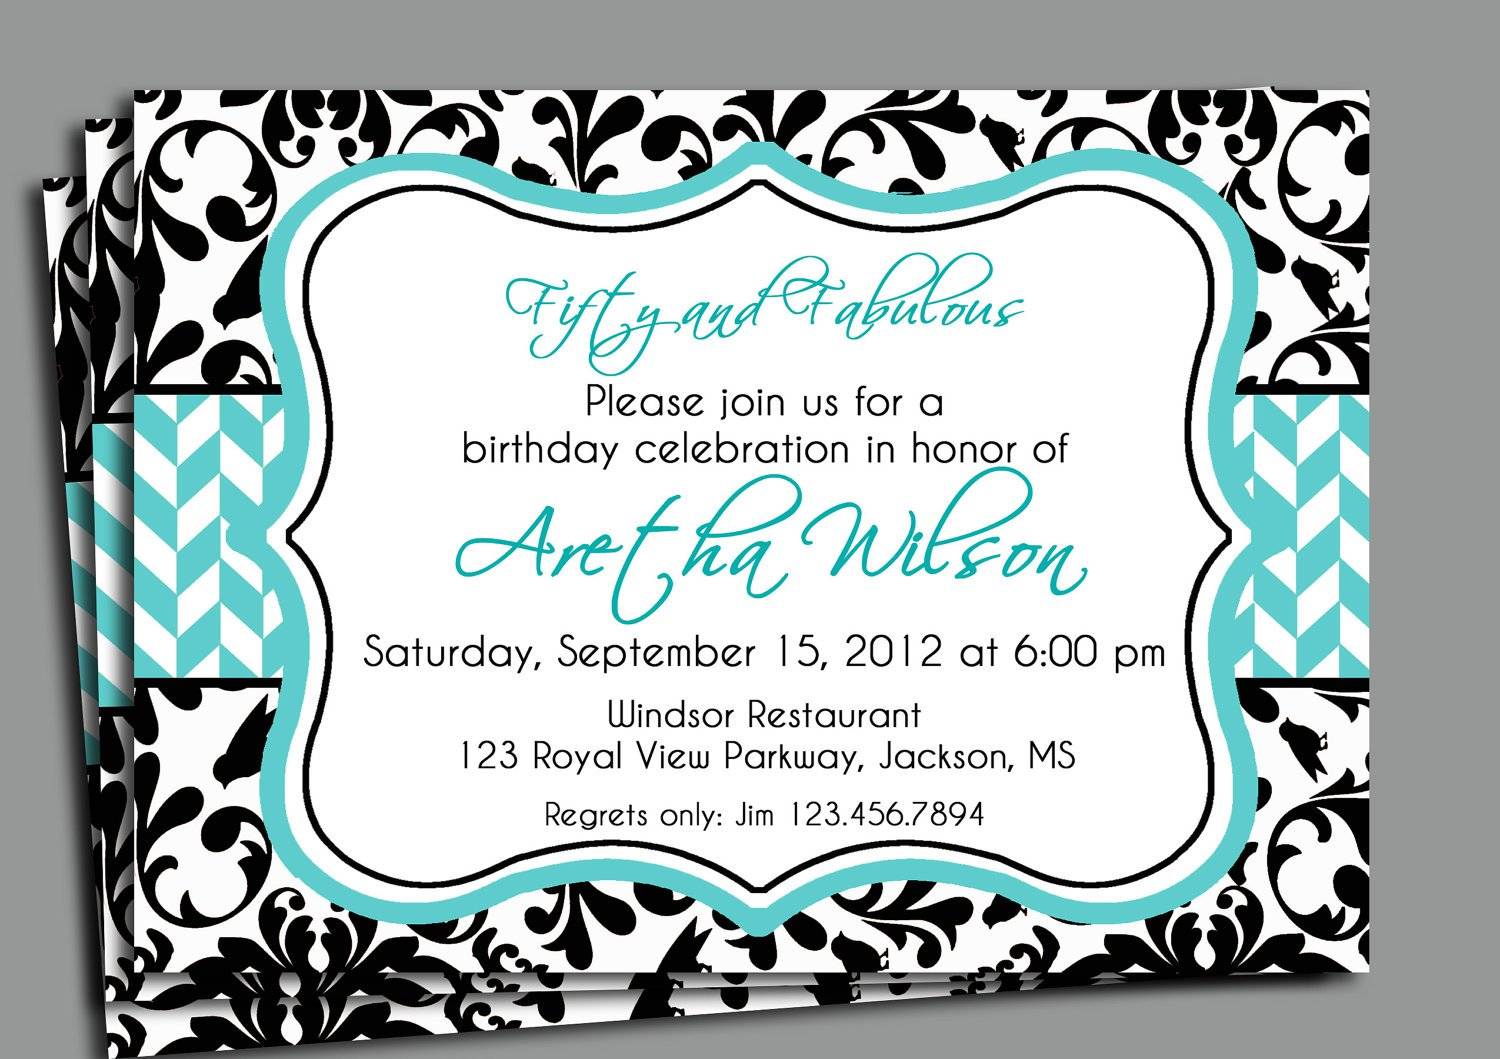 Birthday Invitation Message Sample - Birthday invitation designs for adults